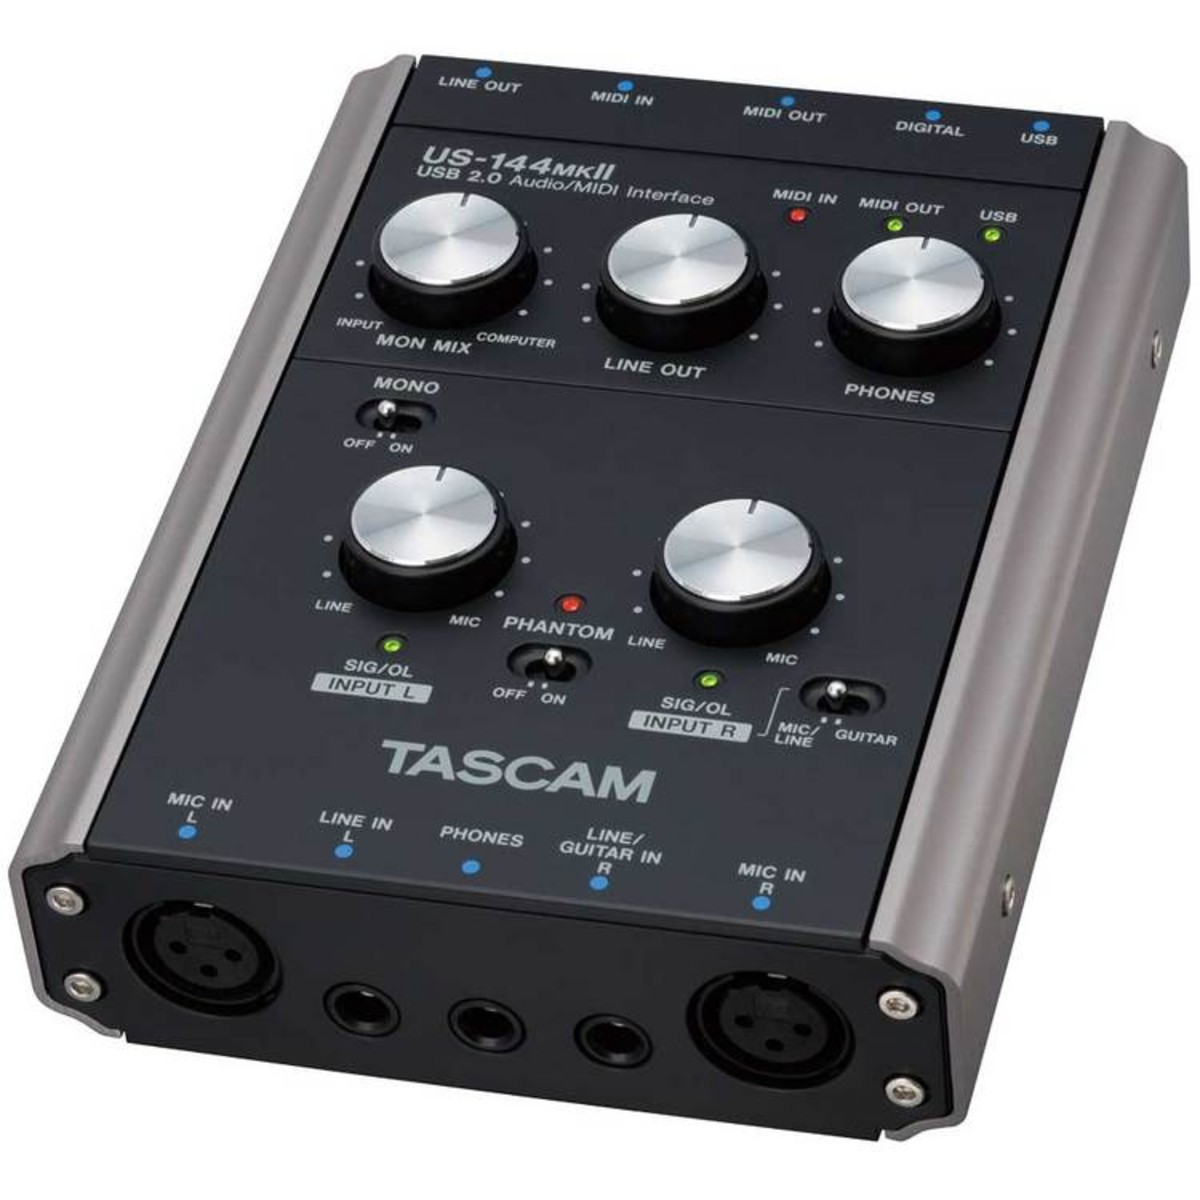 DISC Tascam US-144 MKII USB Audio Interface at Gear4music